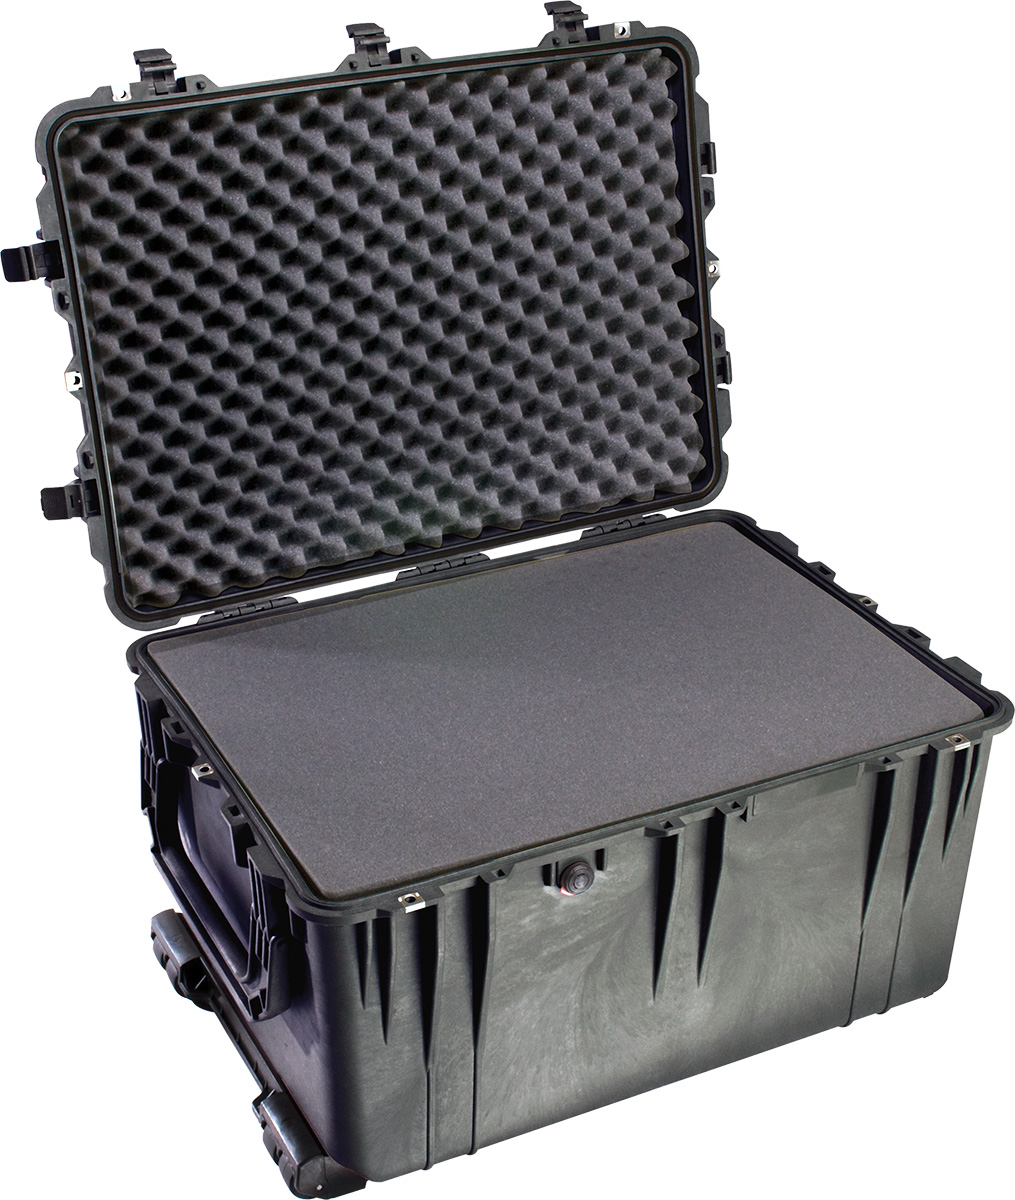 pelican 1660 large waterproof hard case